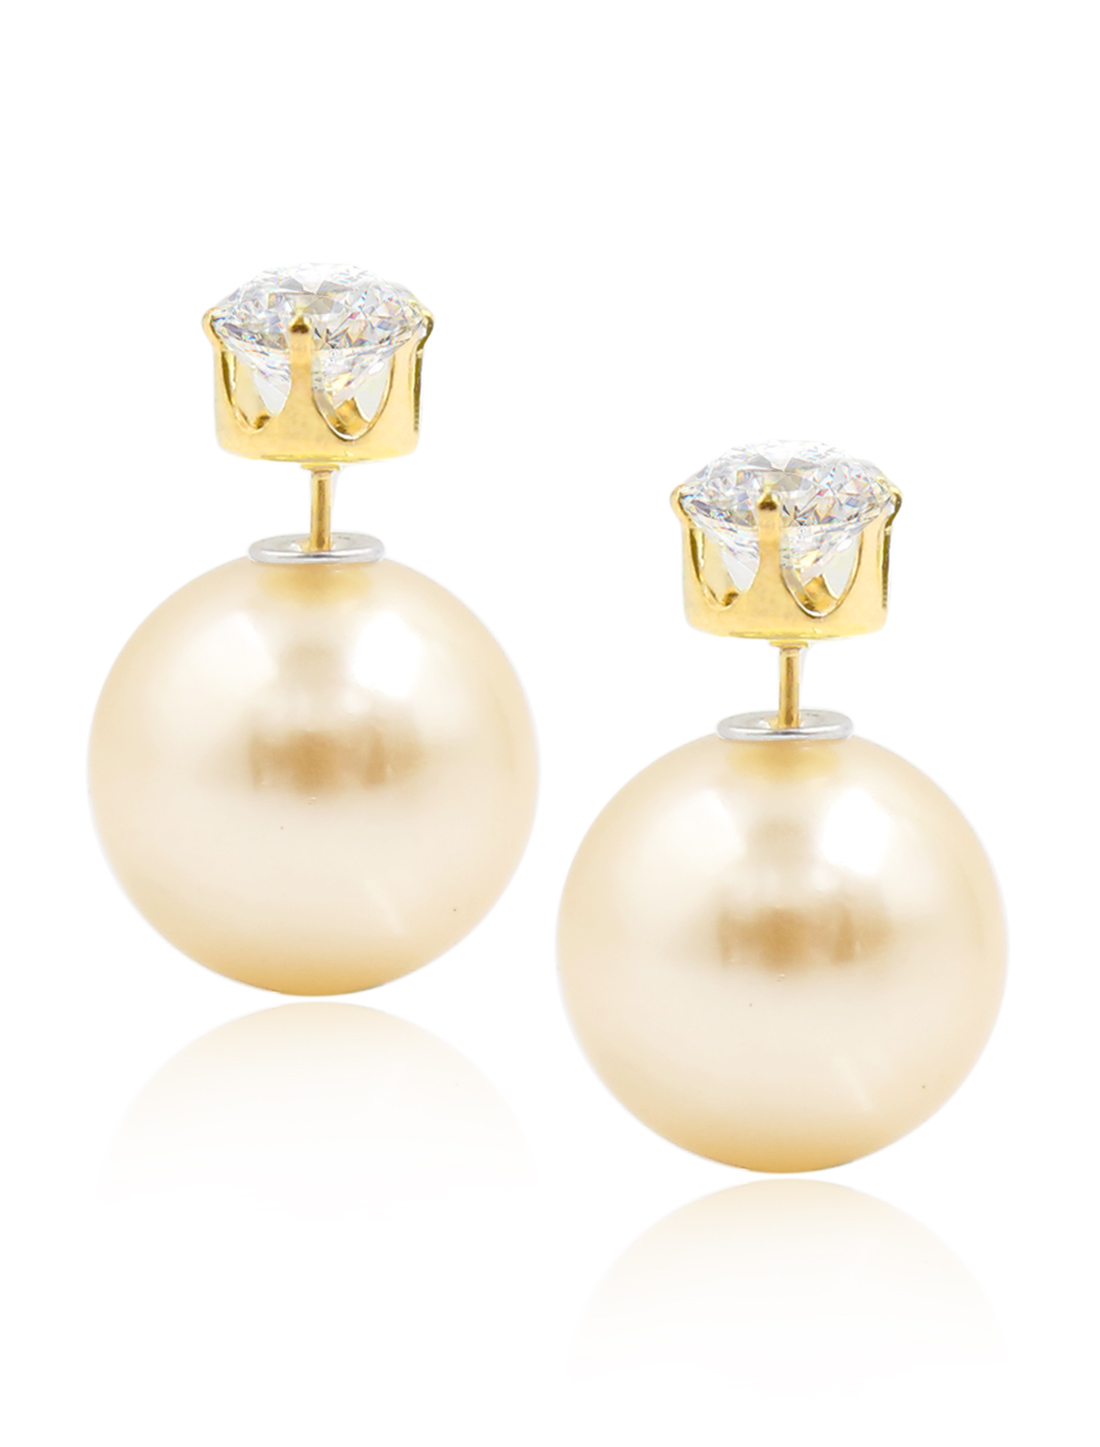 Fashion Women Elegant Double Sides Zircon Ball Earrings Ear Stud 1 Pair Apricot